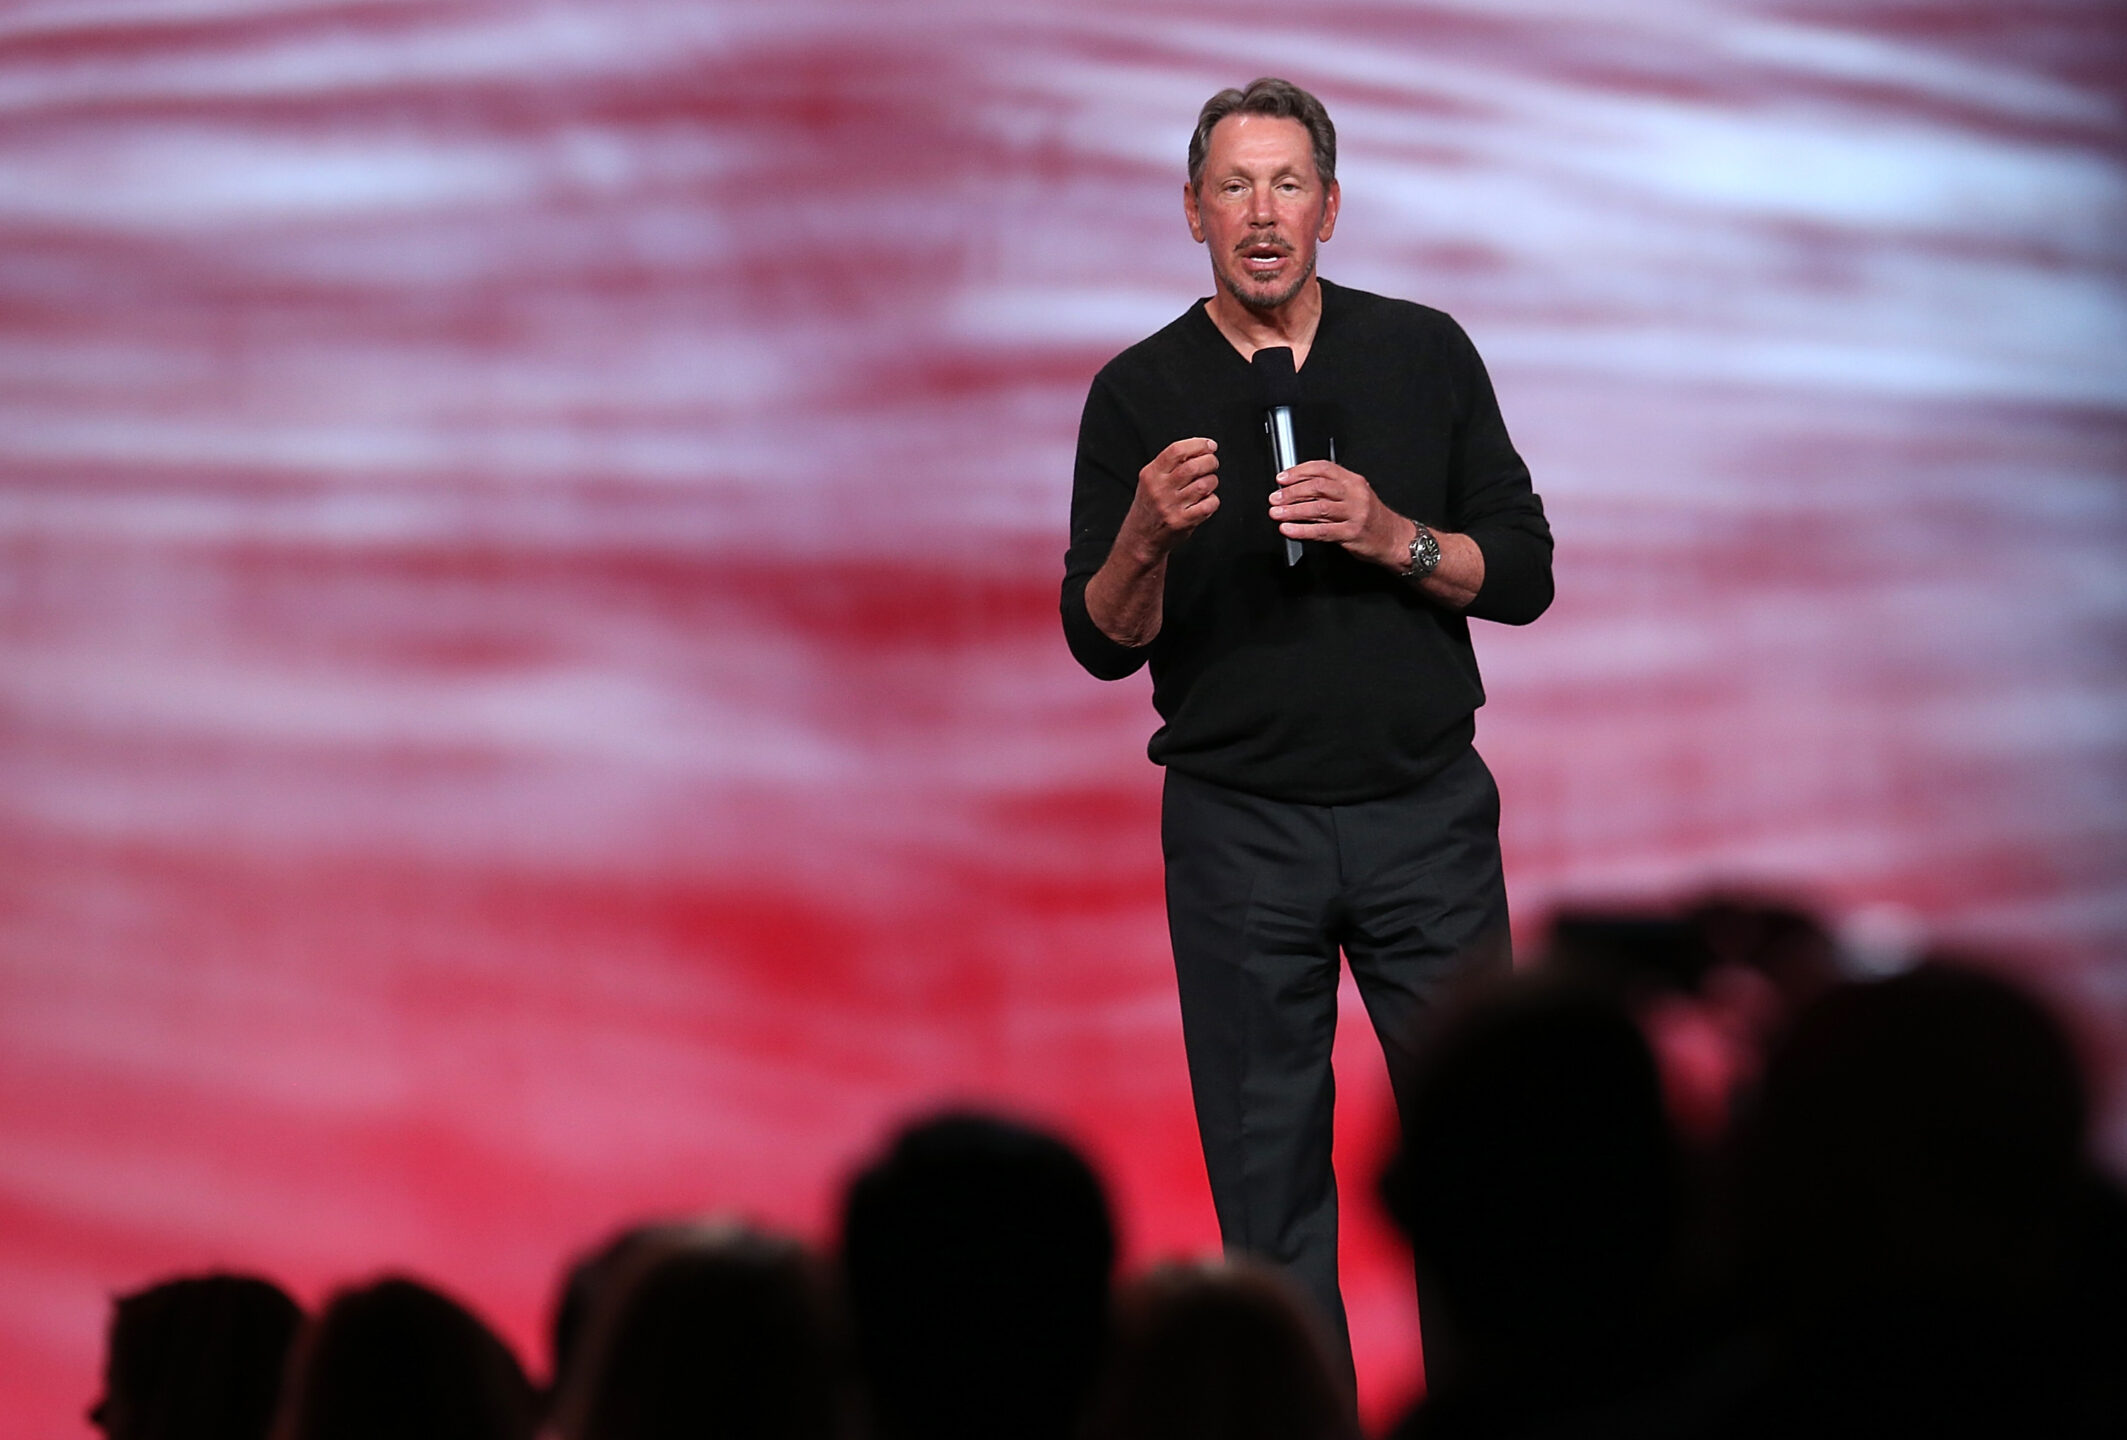 Larry Ellison, fondatore e ceo di Oracle